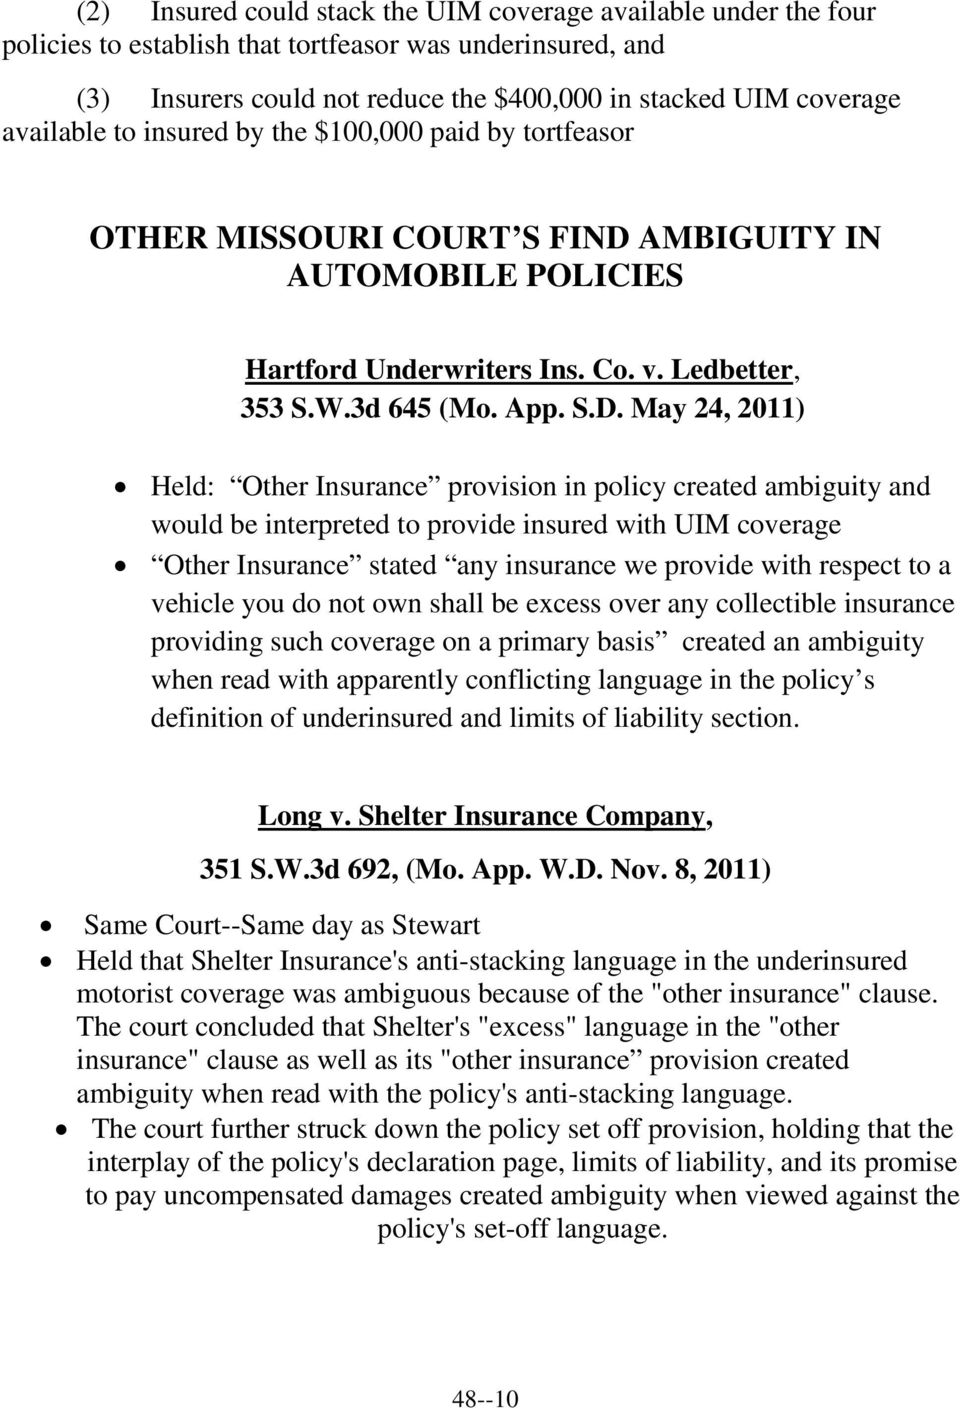 AMBIGUITY IN AUTOMOBILE POLICIES Hartford Underwriters Ins. Co. v. Ledbetter, 353 S.W.3d 645 (Mo. App. S.D.